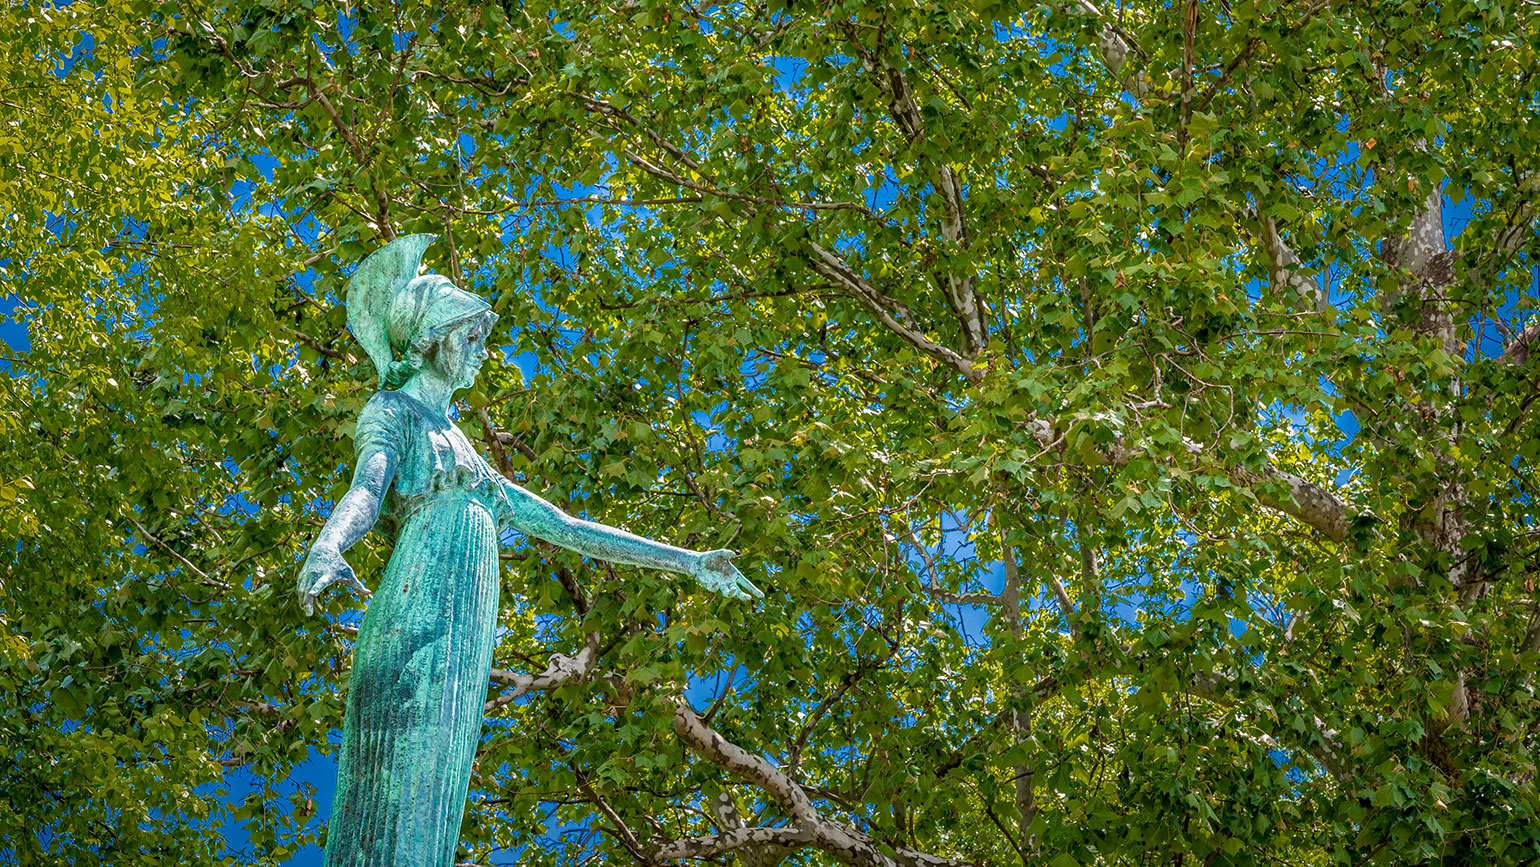 Minerva statue and trees on campus